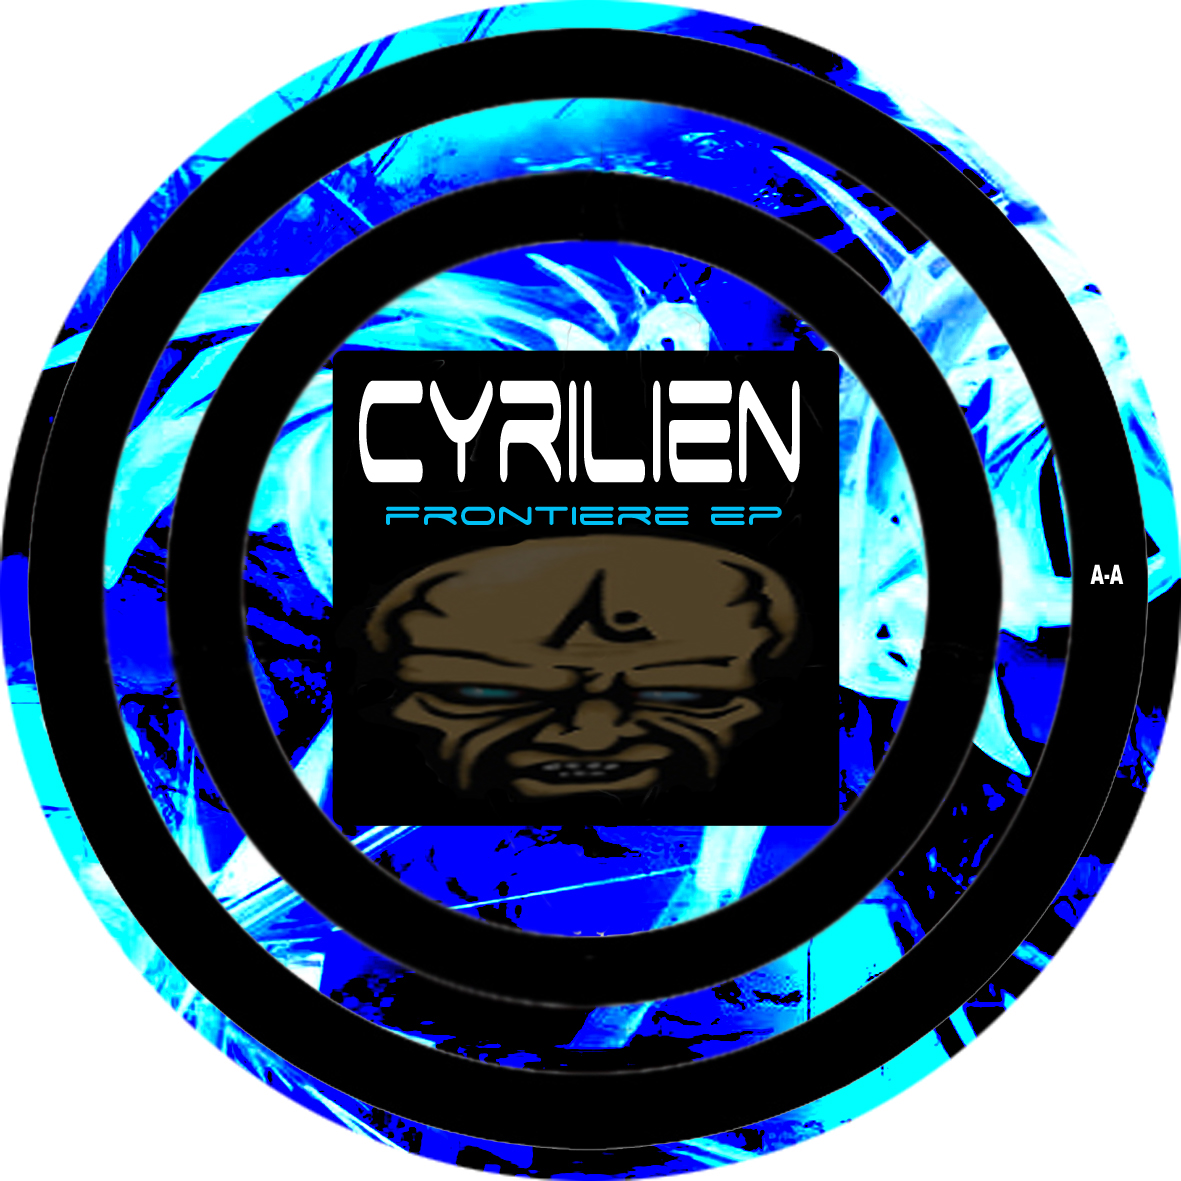 MP3CCREATDF006 - CORE CREATOR DIGIFILES - CYRILIEN - Frontiére